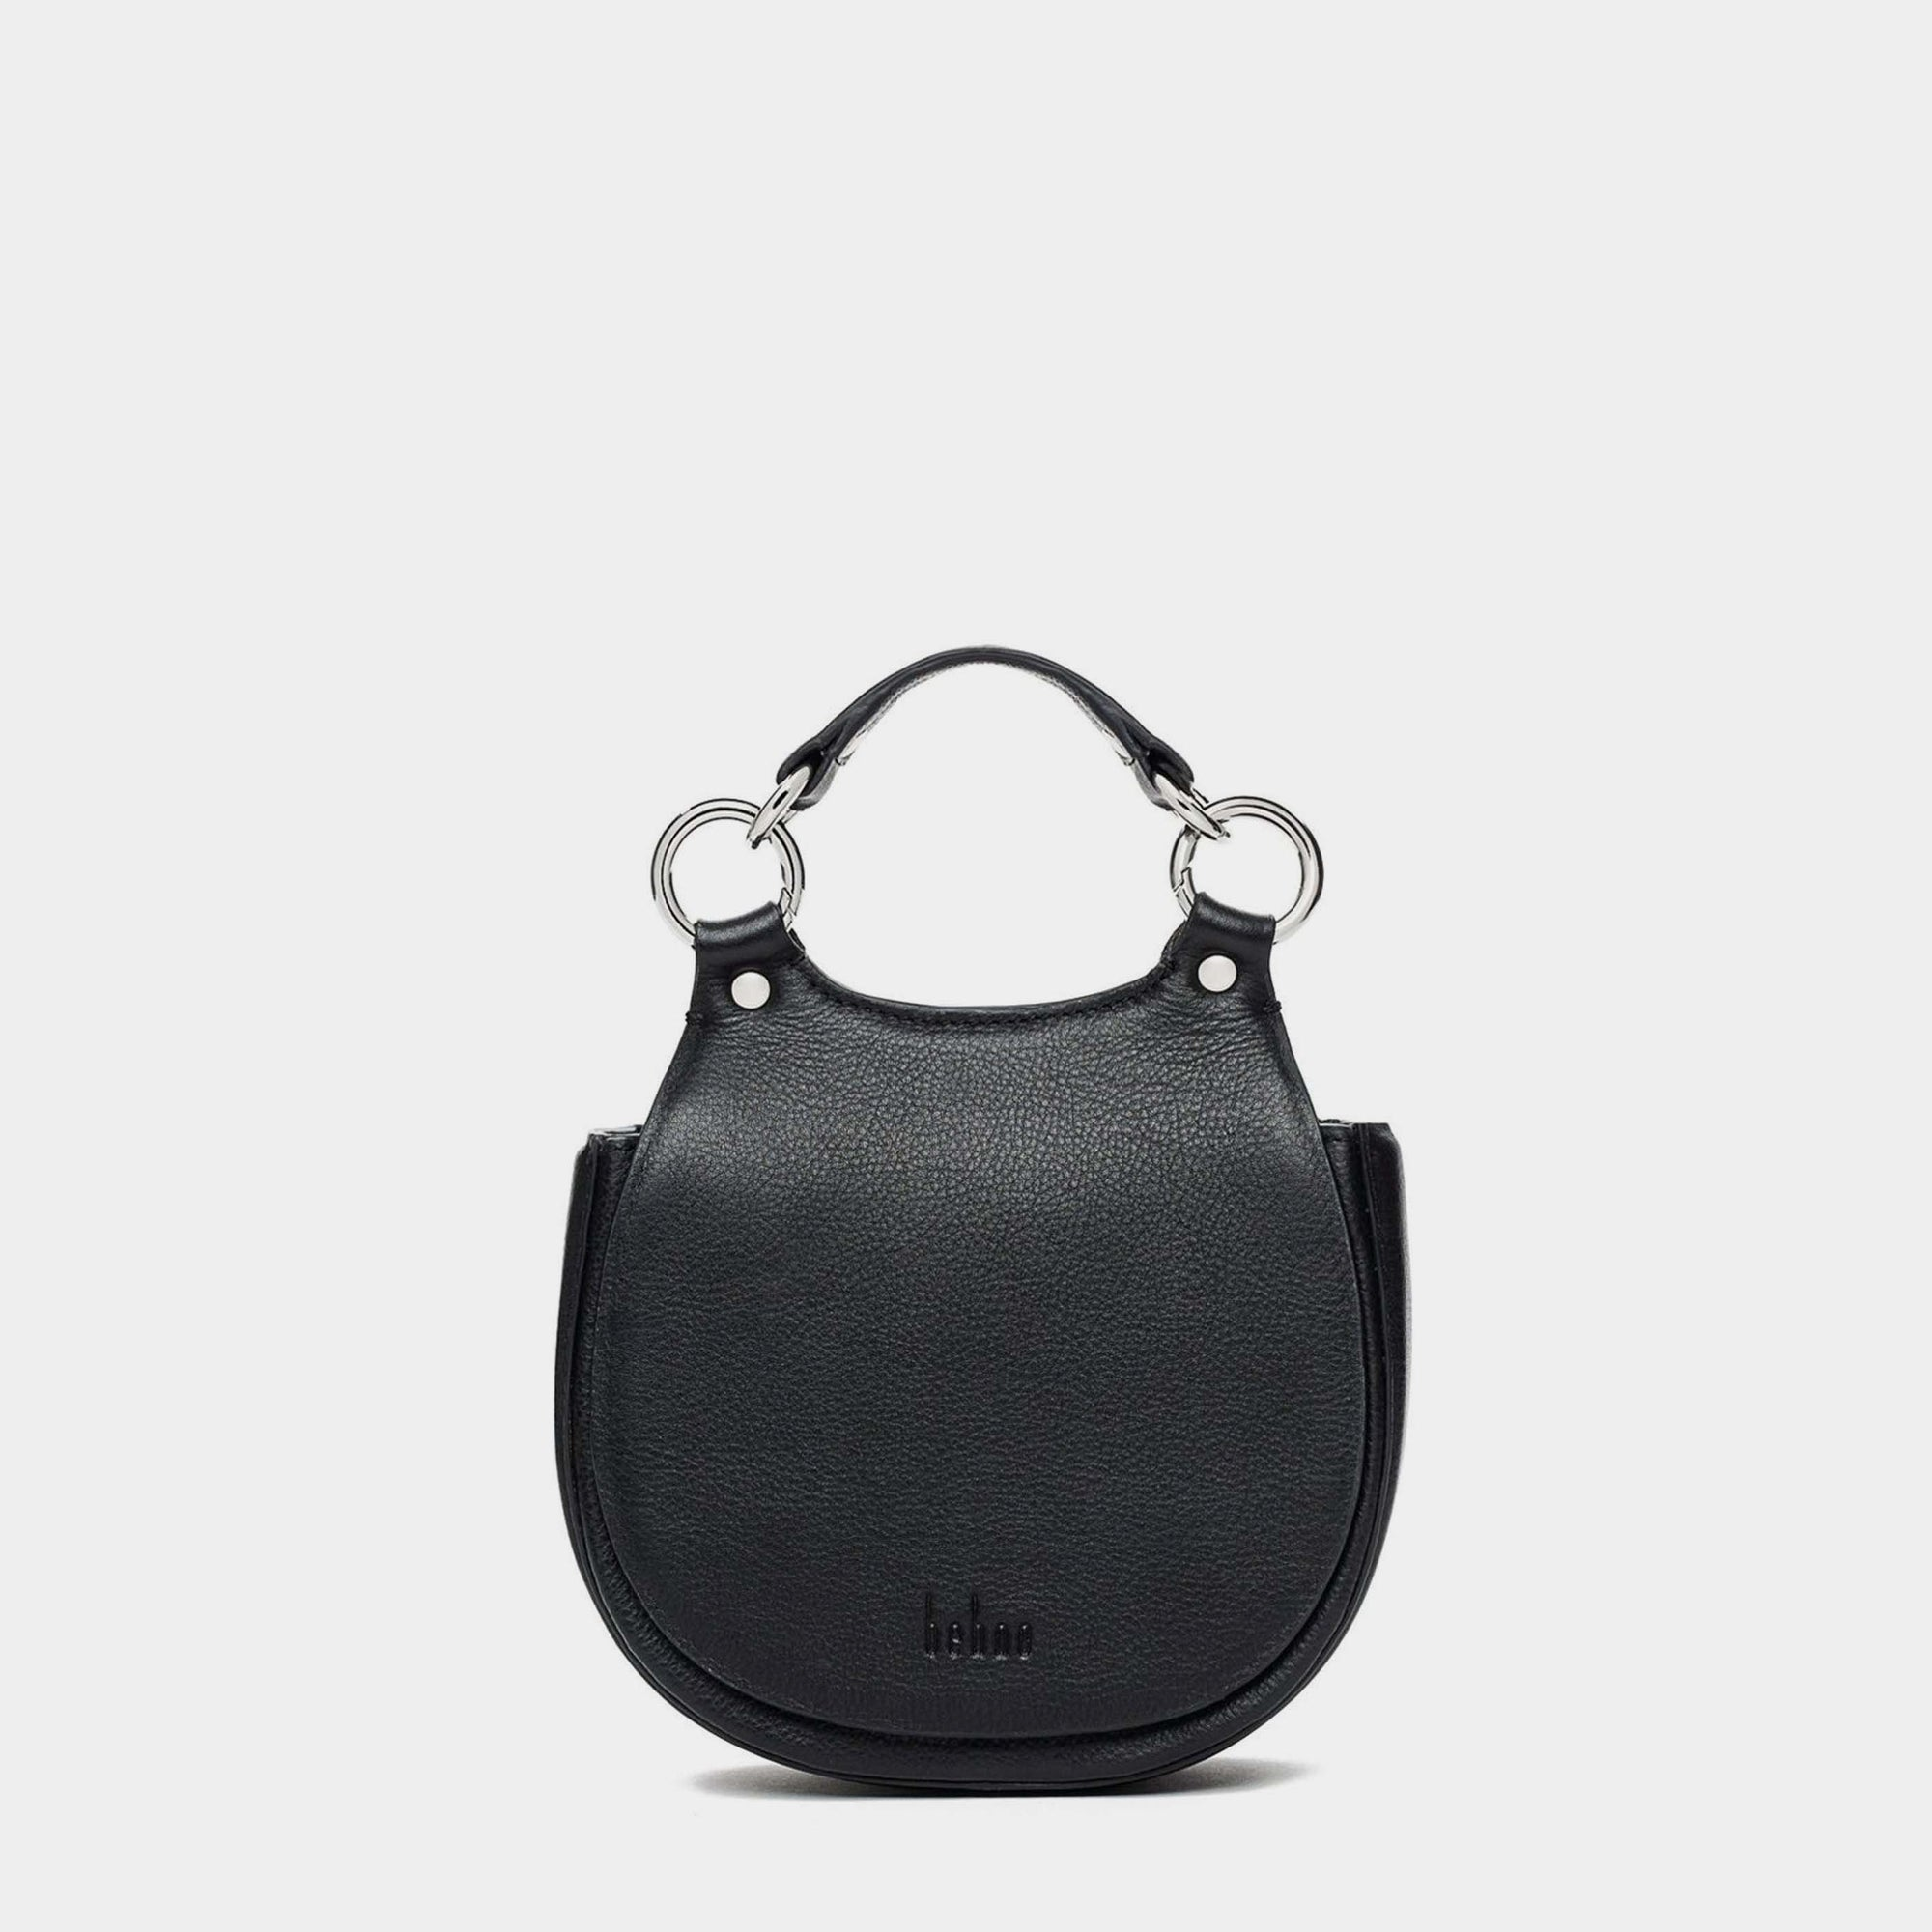 TILDA MINI SADDLE BAG PEBBLE BLACK